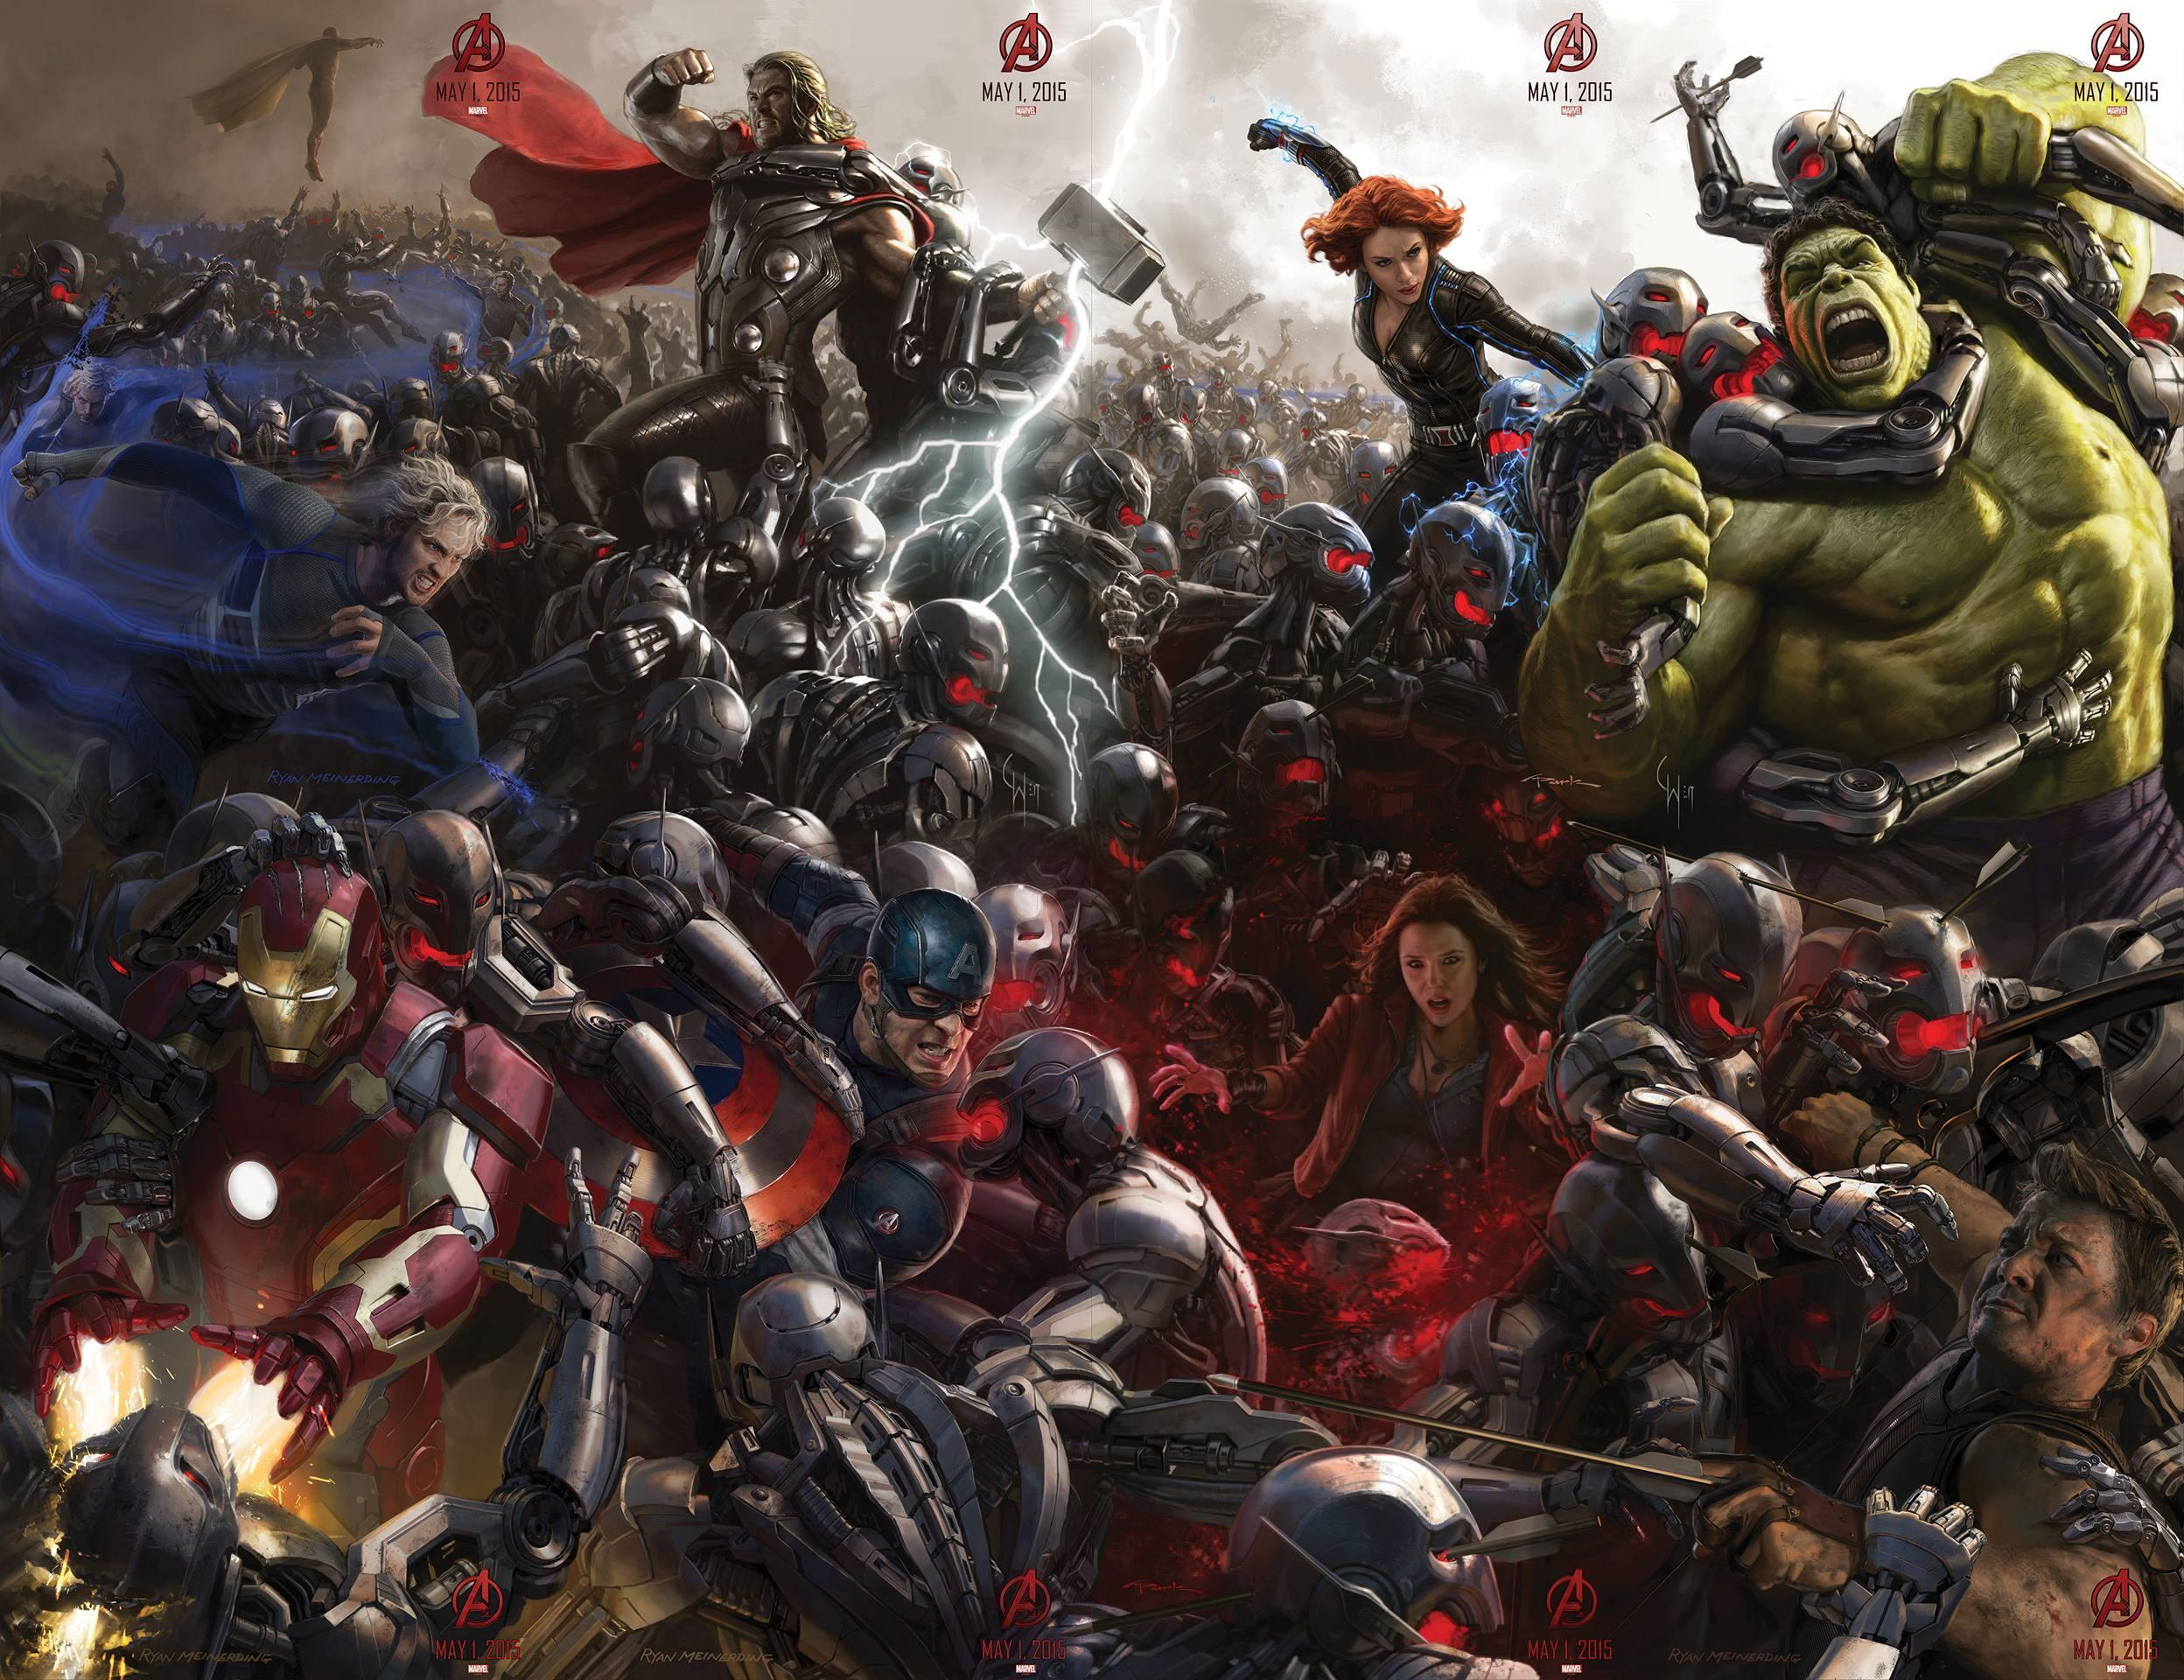 Tony Stark Causes Accidental Chaos In Avengers: Age Of Ultron Official Synopsis